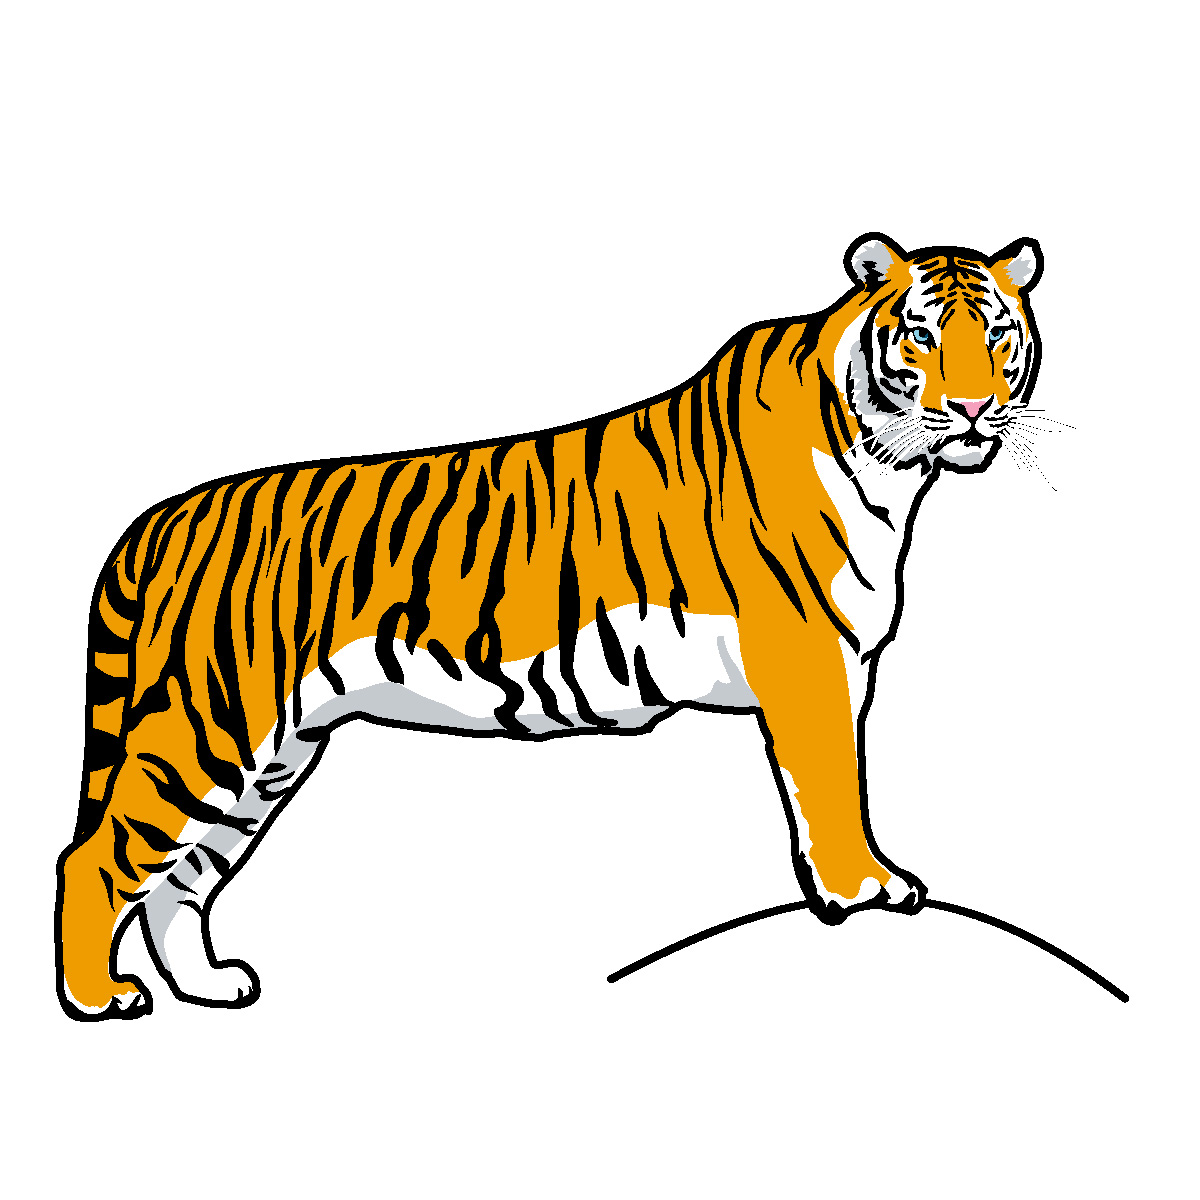 Tiger 1 color clipart banner black and white Clip Art: Big Cats: Tiger Color 1 | abcteach banner black and white